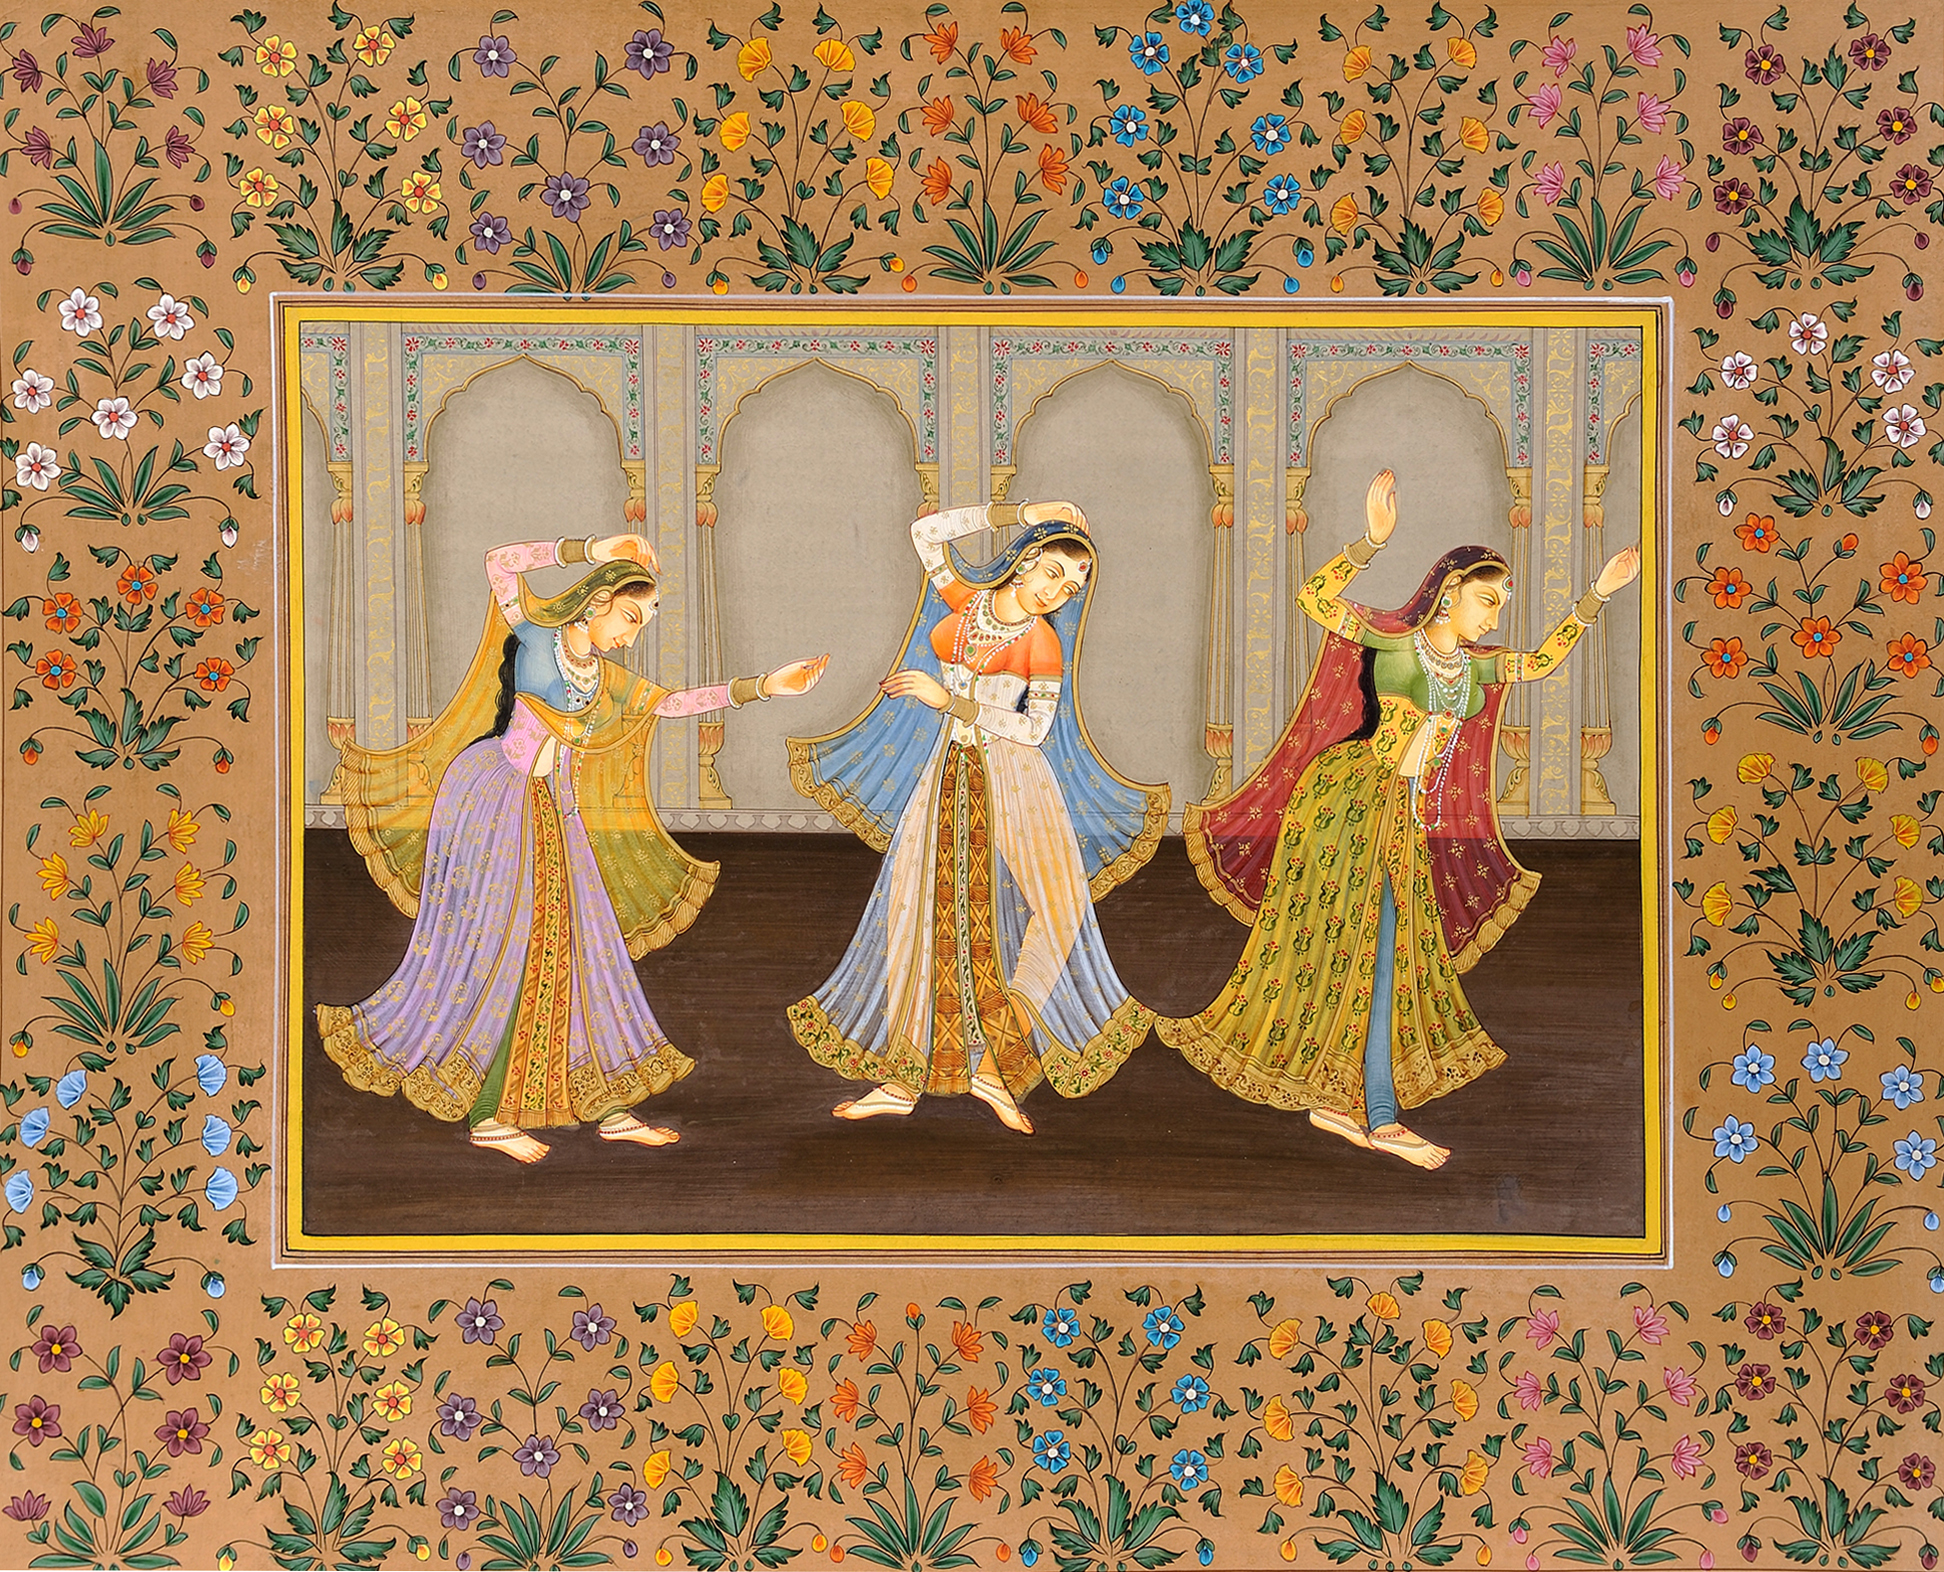 Miniature Painting Wallpaper Ladies Engaged in Dance